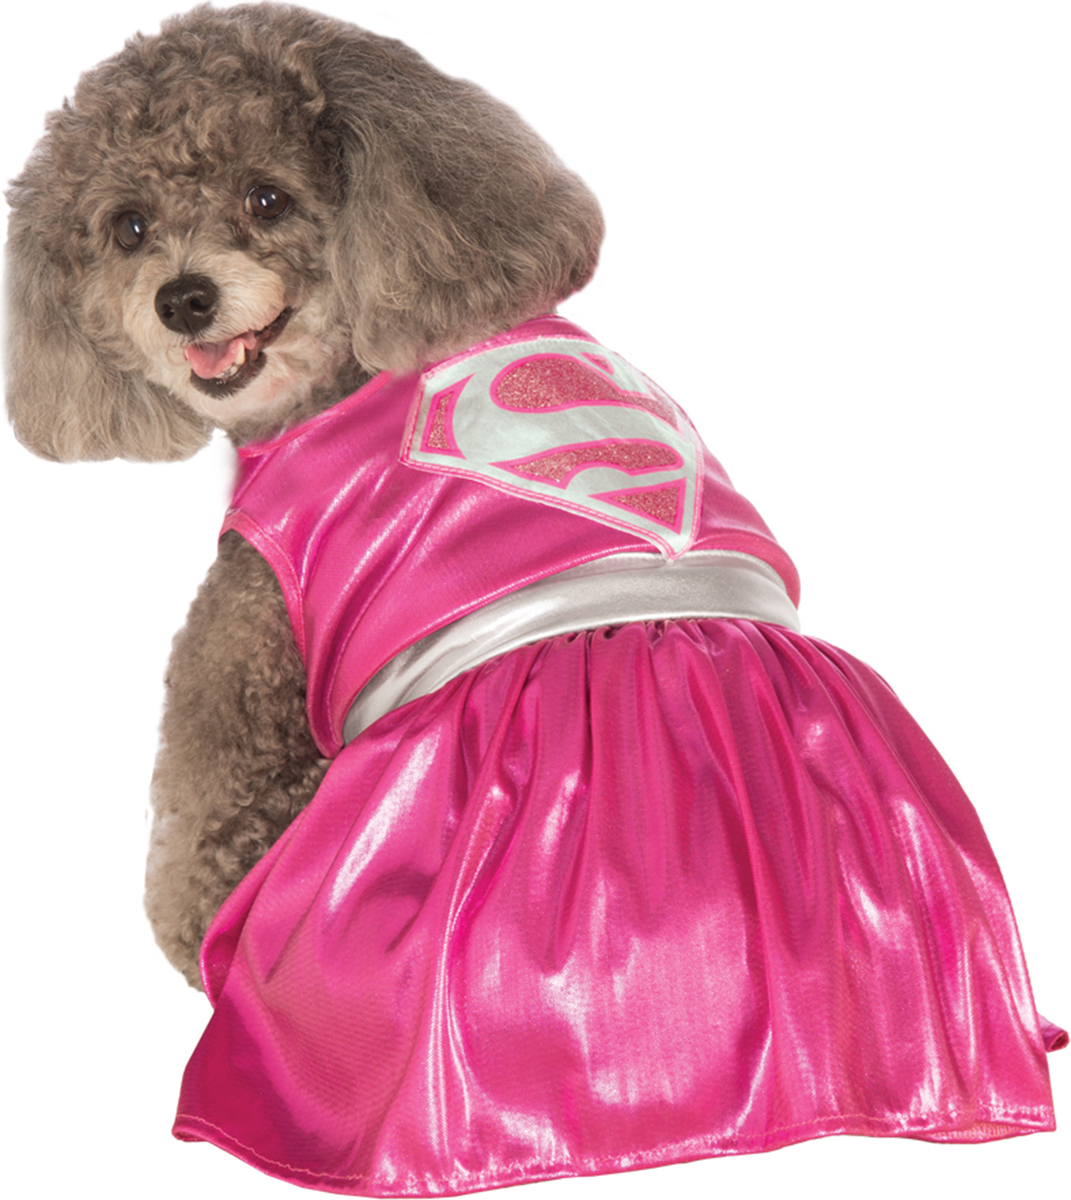 Morris costumes RU887839XL Pet Costume Pink Supergirl Xlg